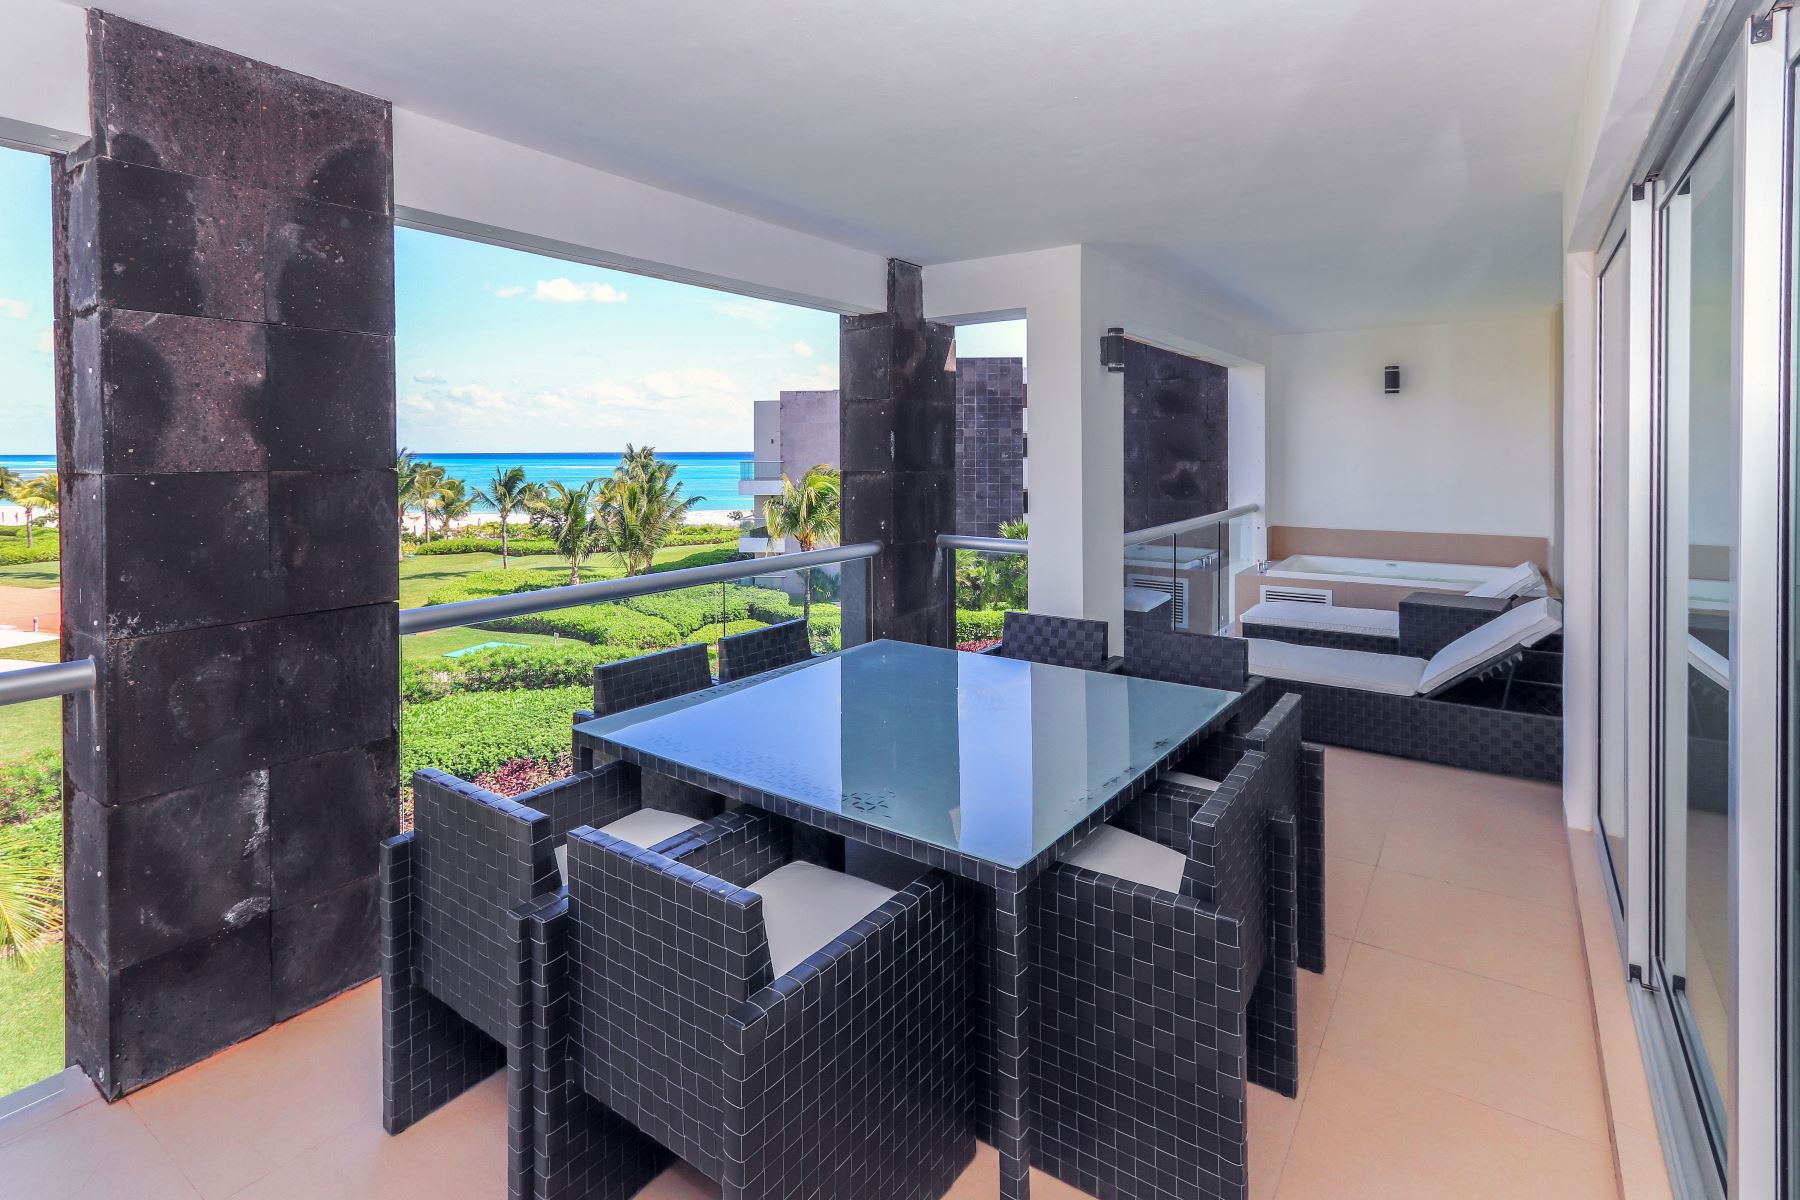 Ocean view terrace with Jacuzzi, lounge chairs, and patio table with seating for 8